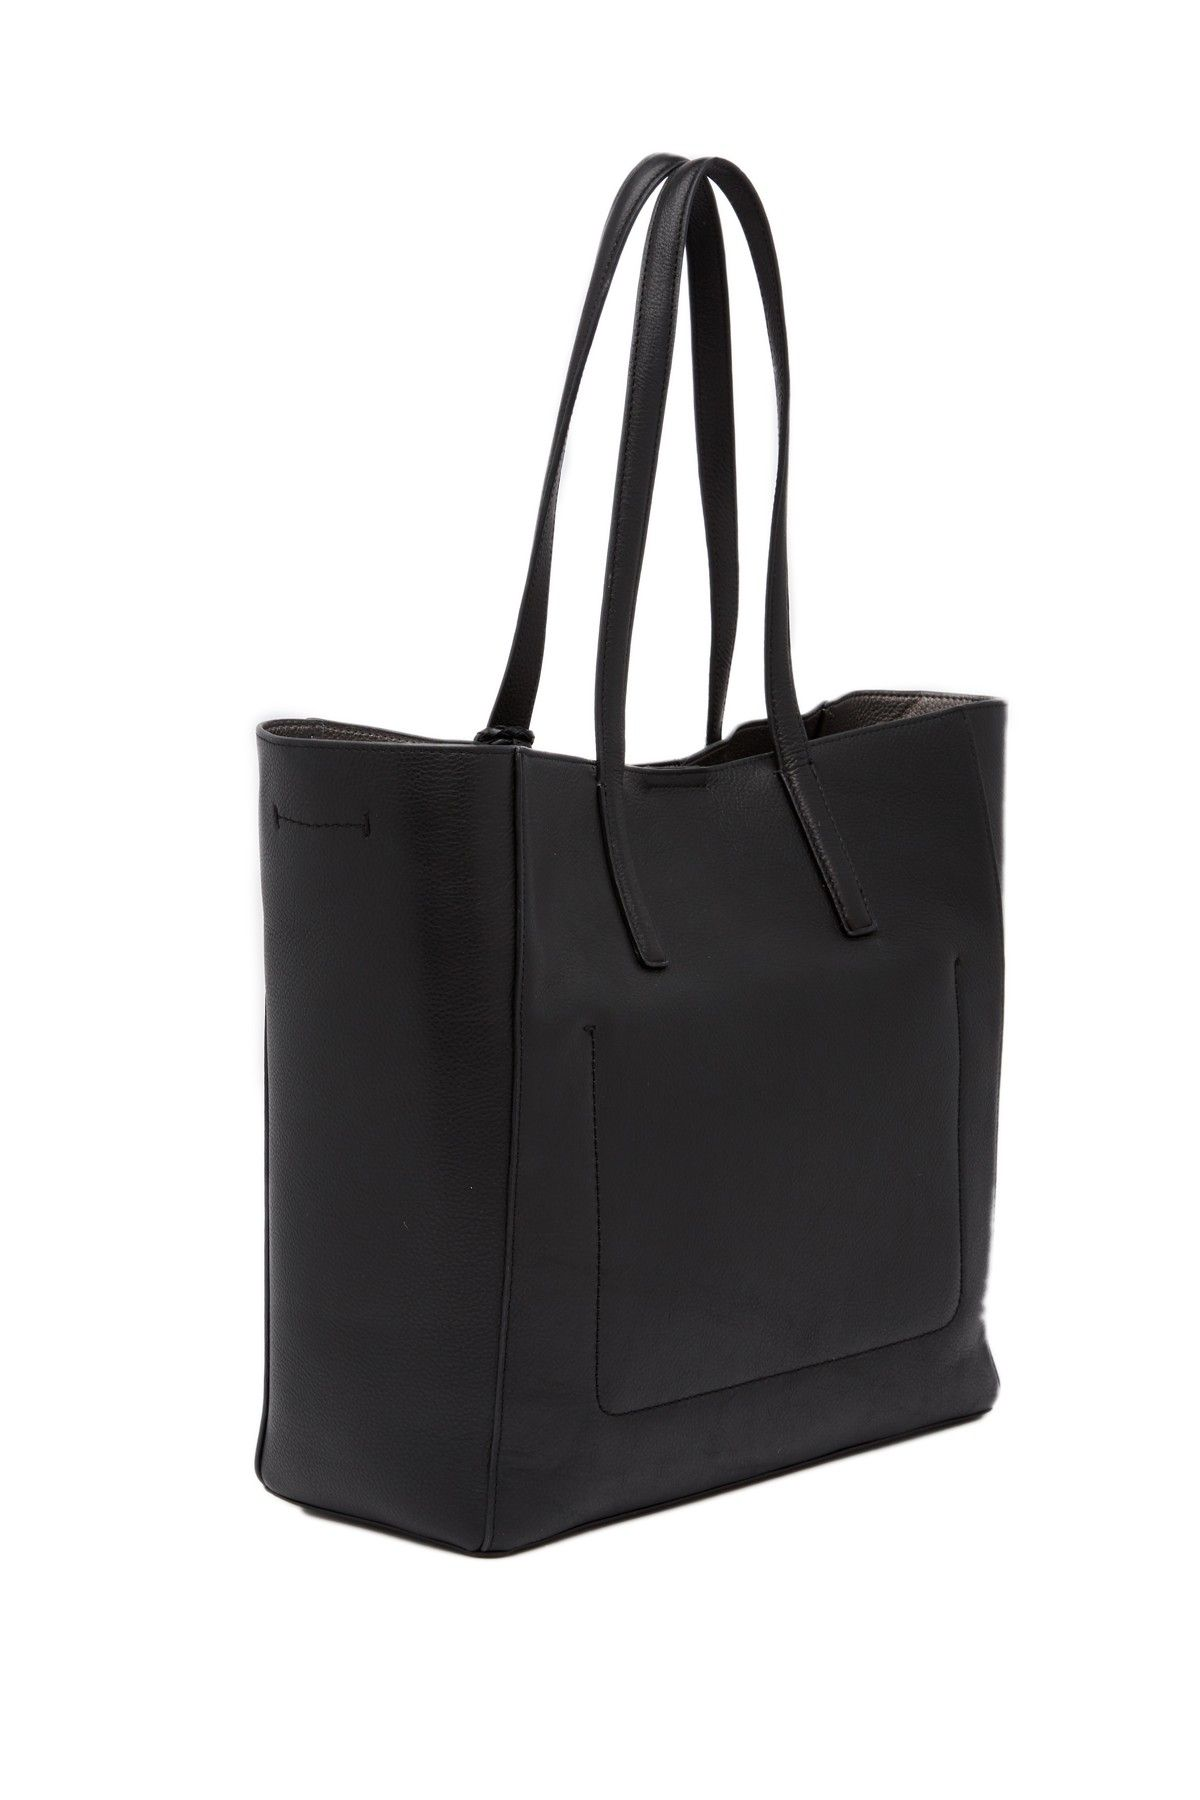 f42091b3195 Cole Haan | Natalie Collection Leather Tote | Bags | Cole haan ...